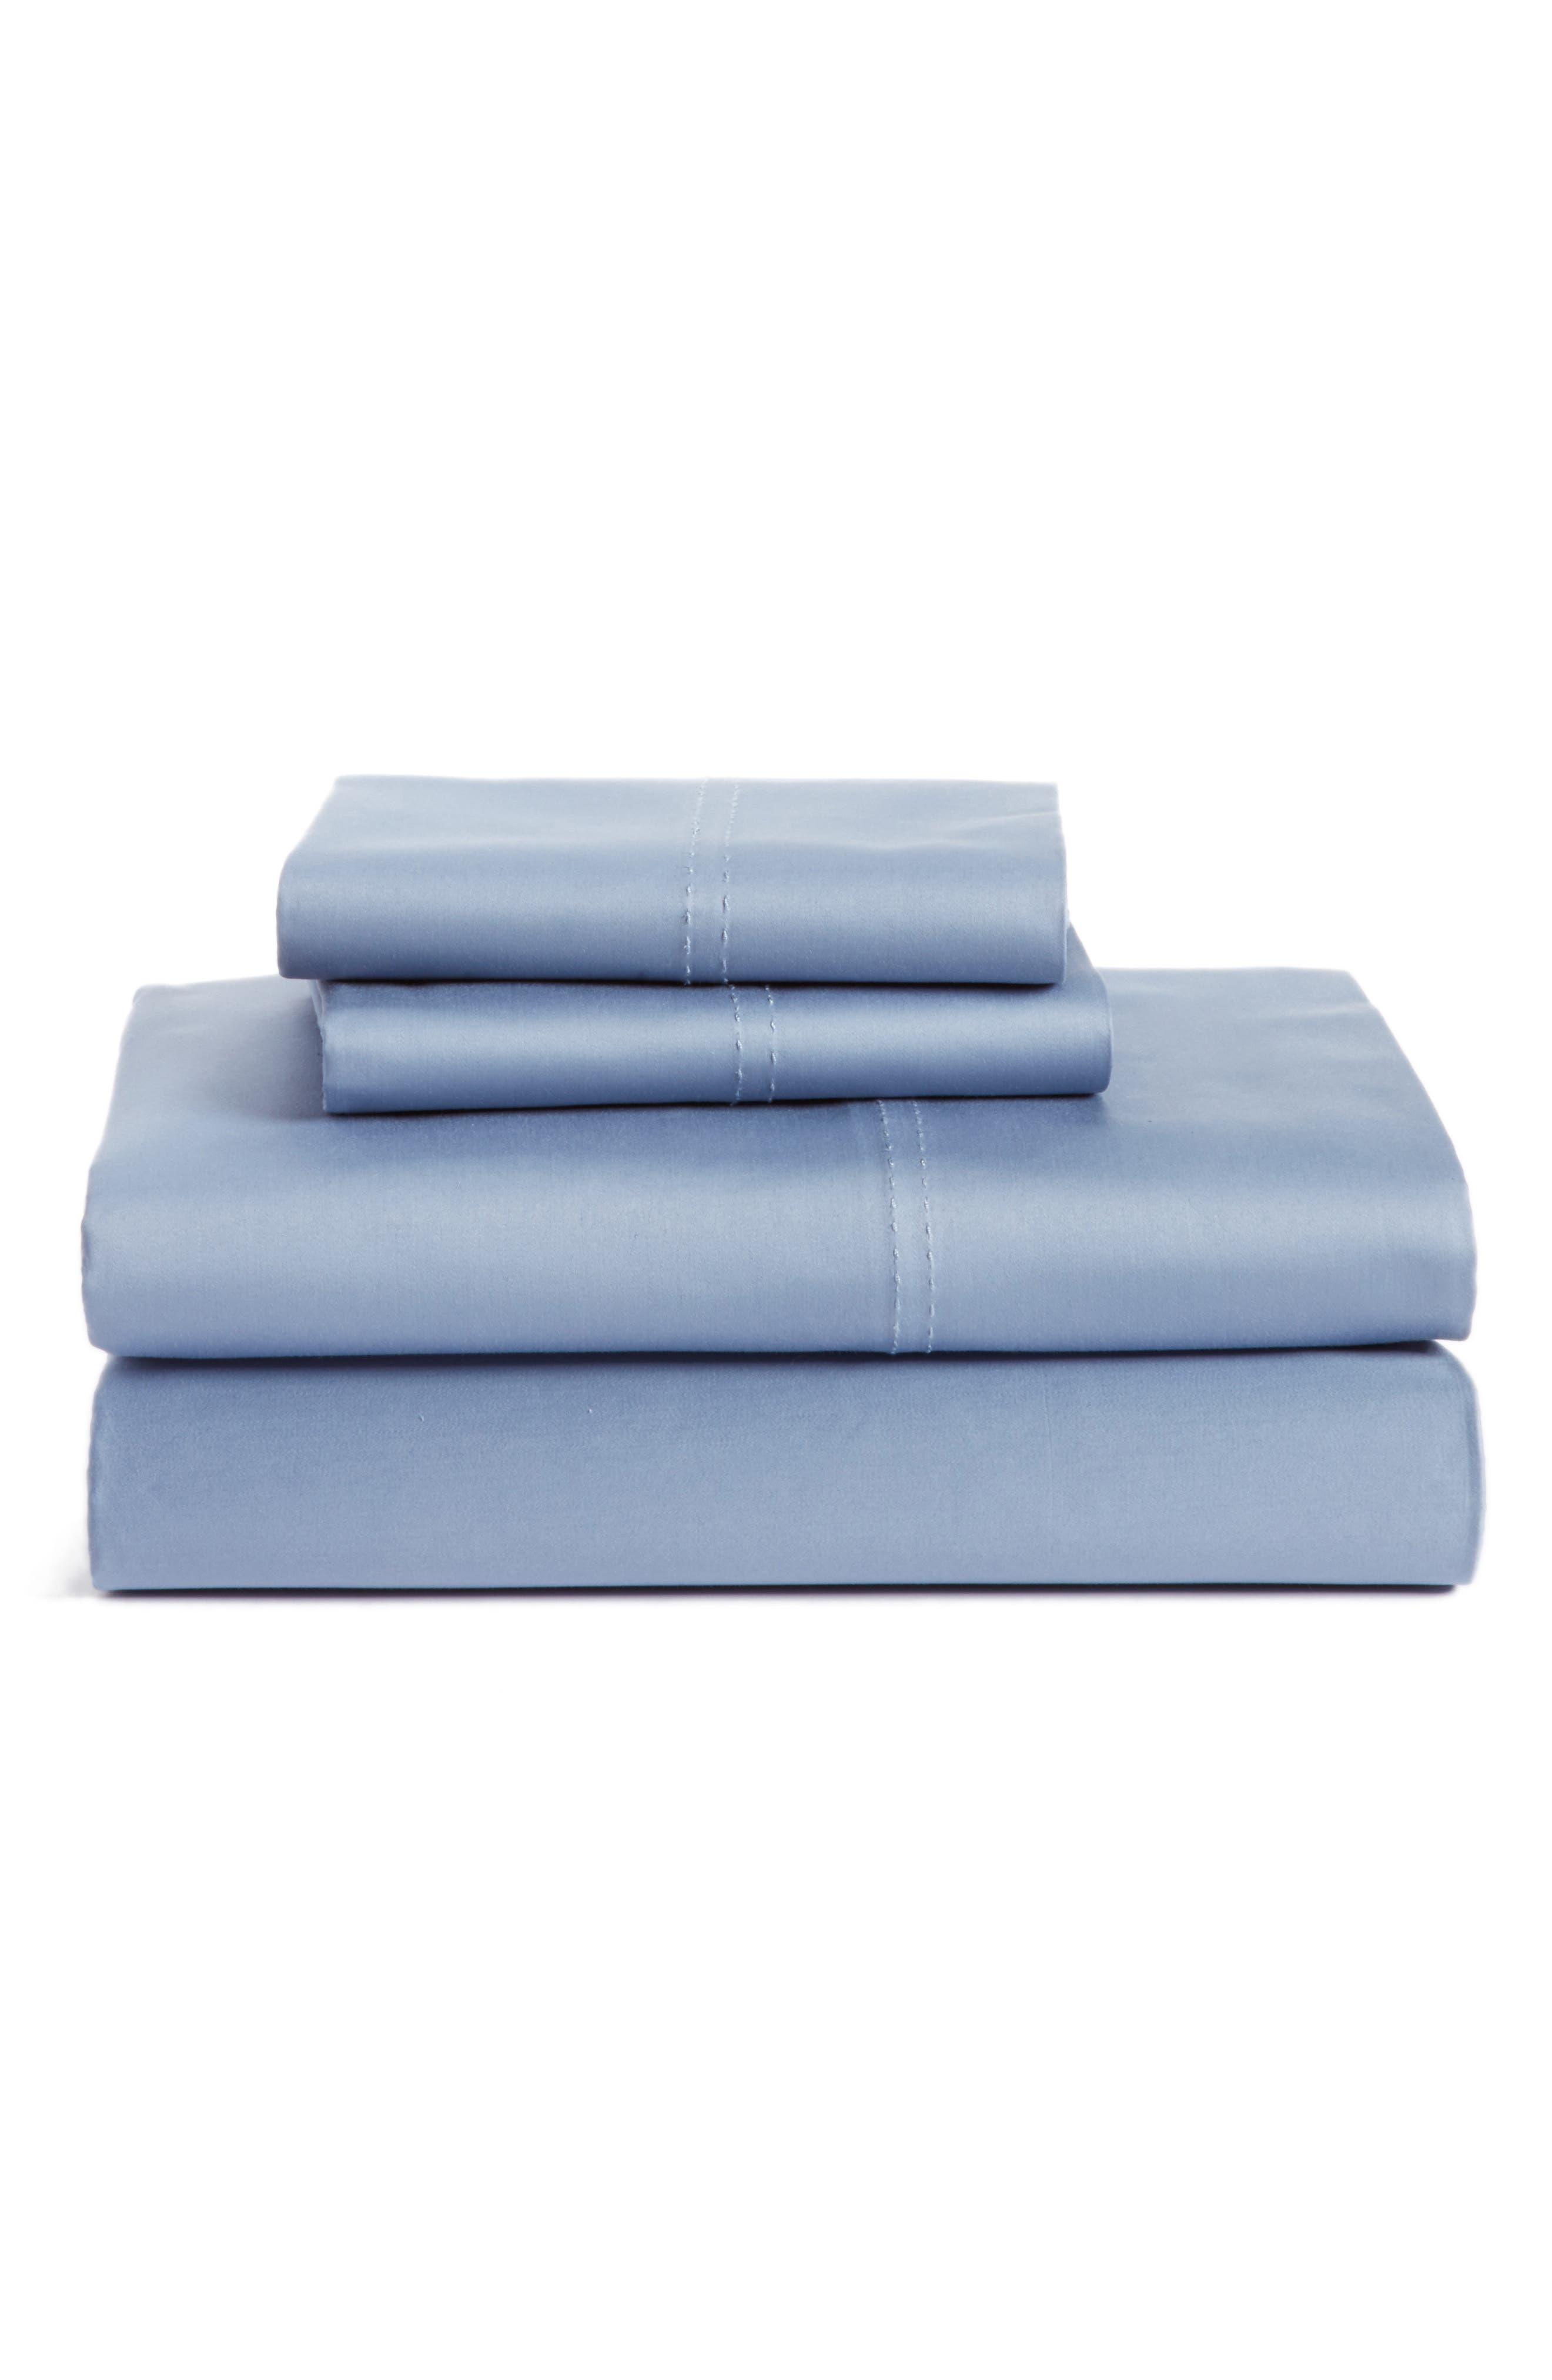 nordstrom at home 400 thread count organic cotton sateen sheet set - Cal King Sheets